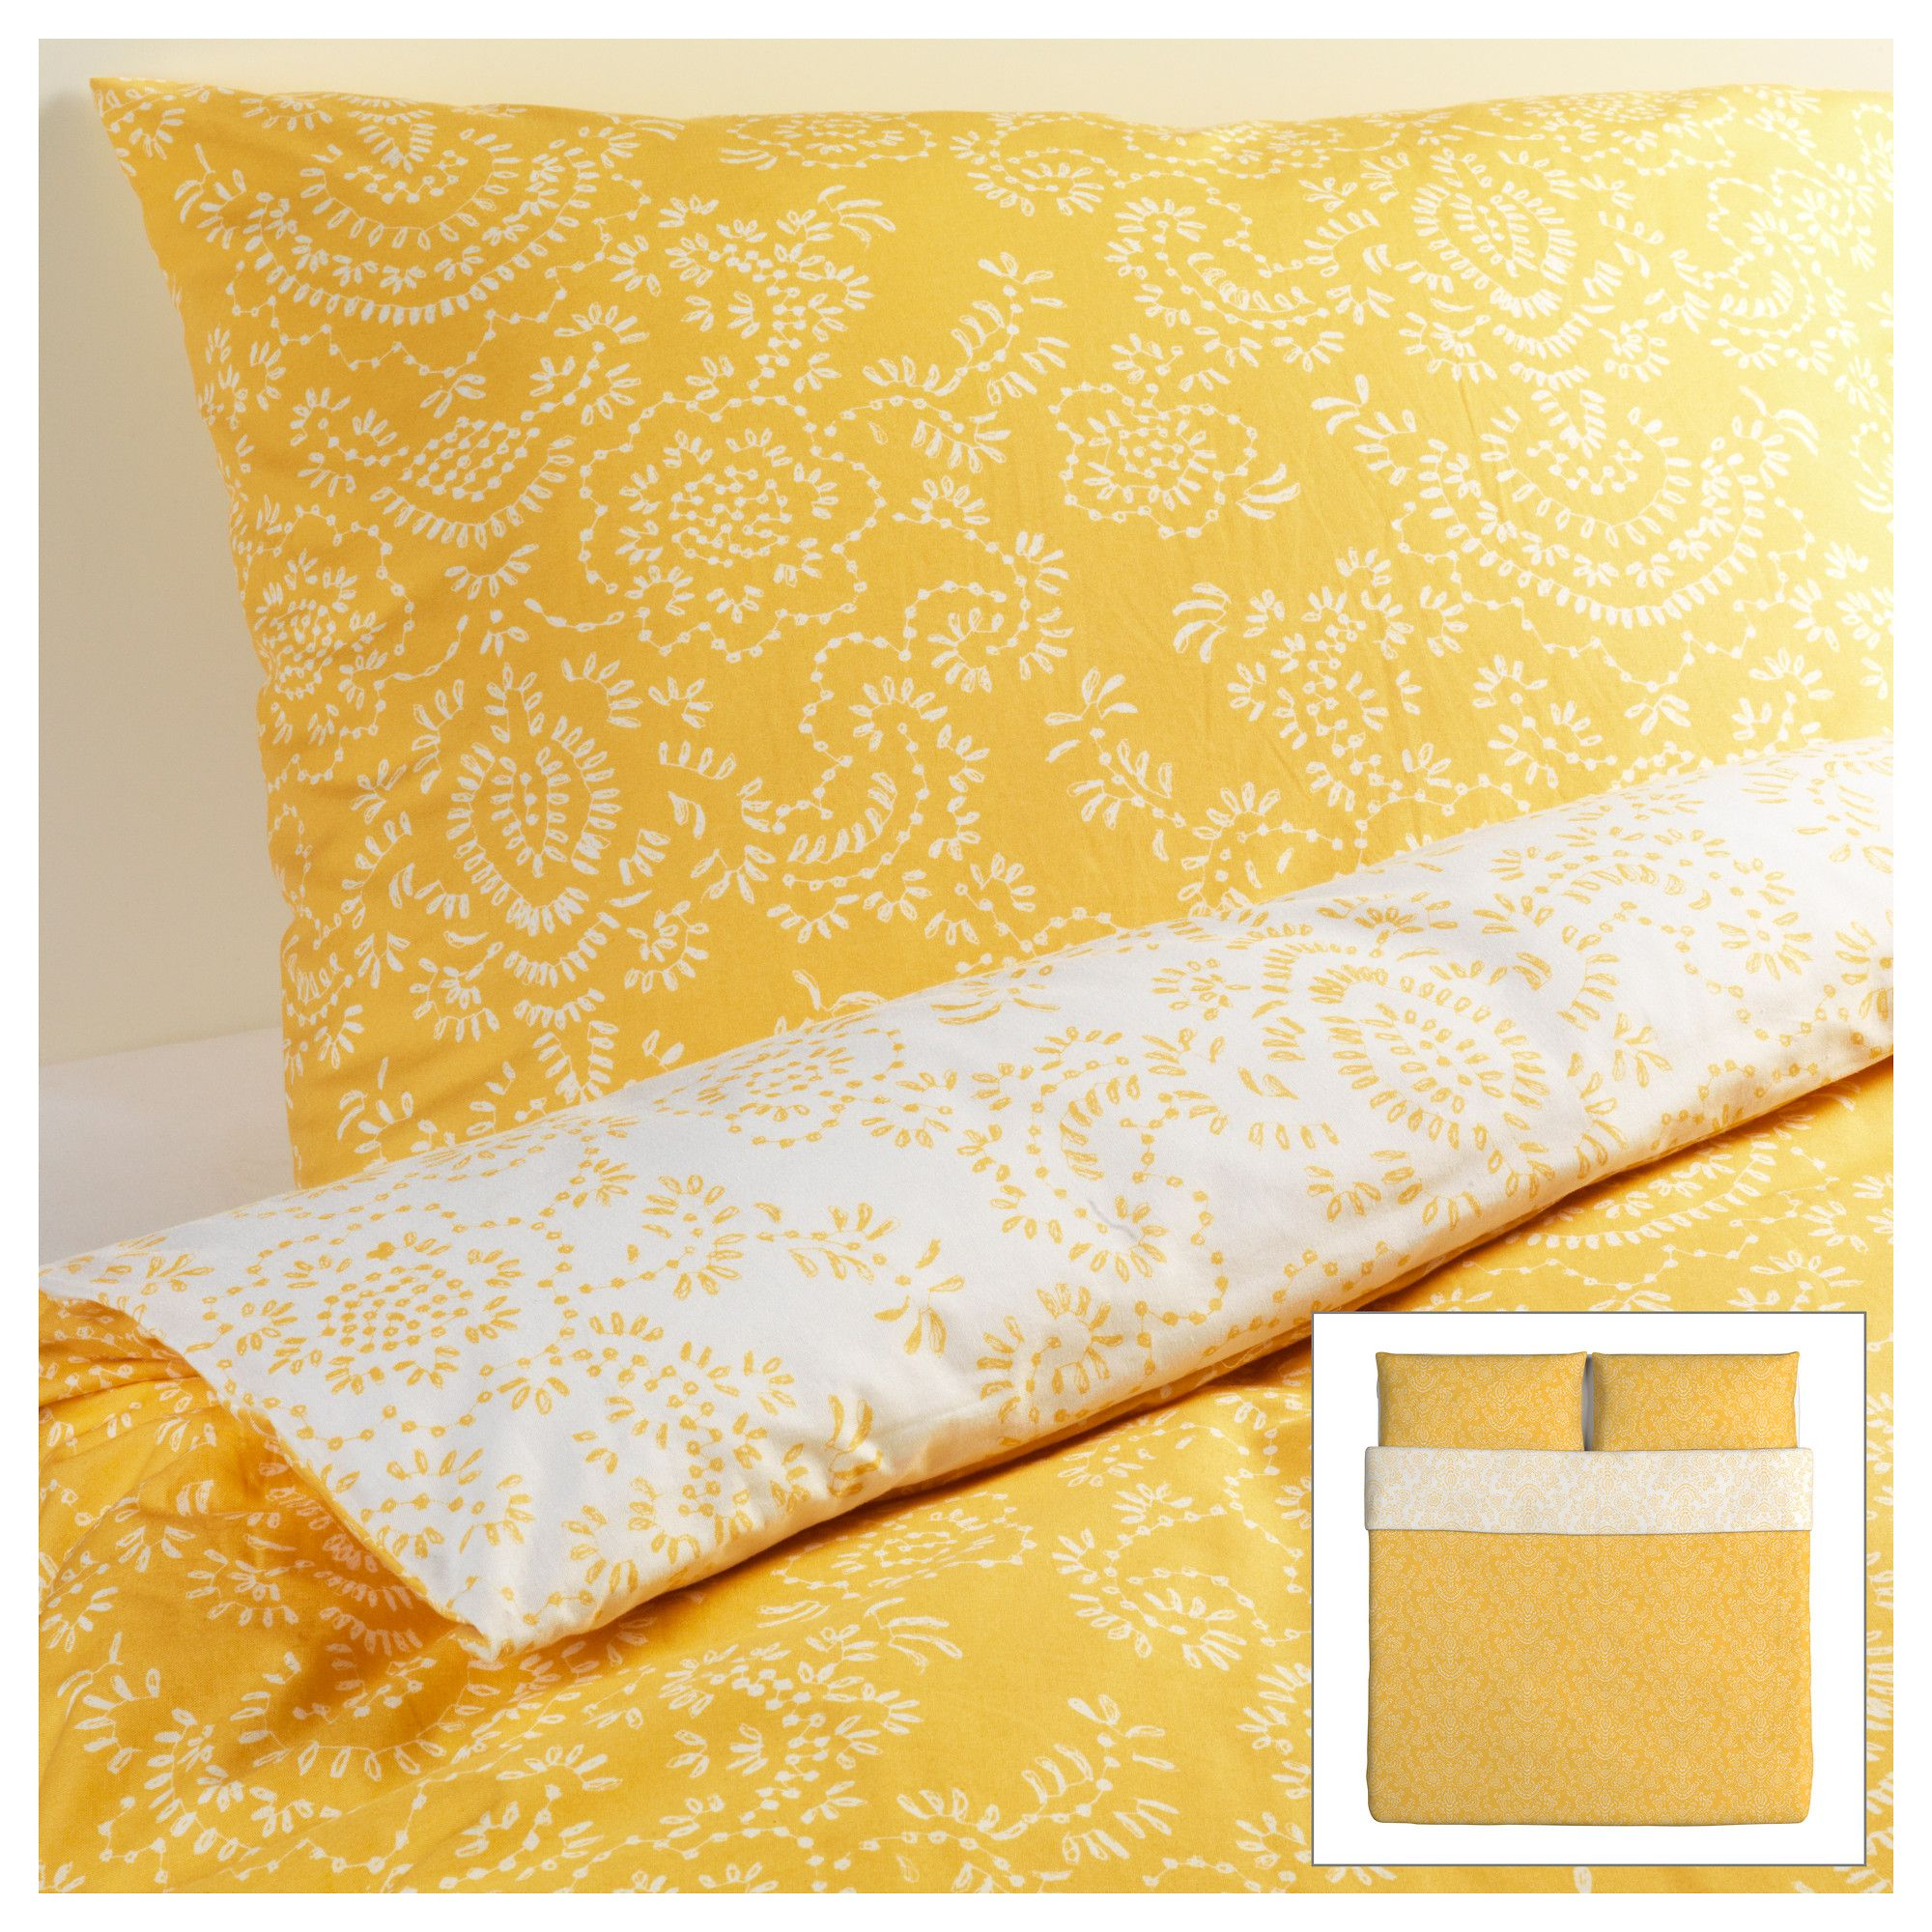 quilt bedding leopard duvet sets king comforters yellow comforter size and grey beautiful twin sheets bed of full set white queen cover pink